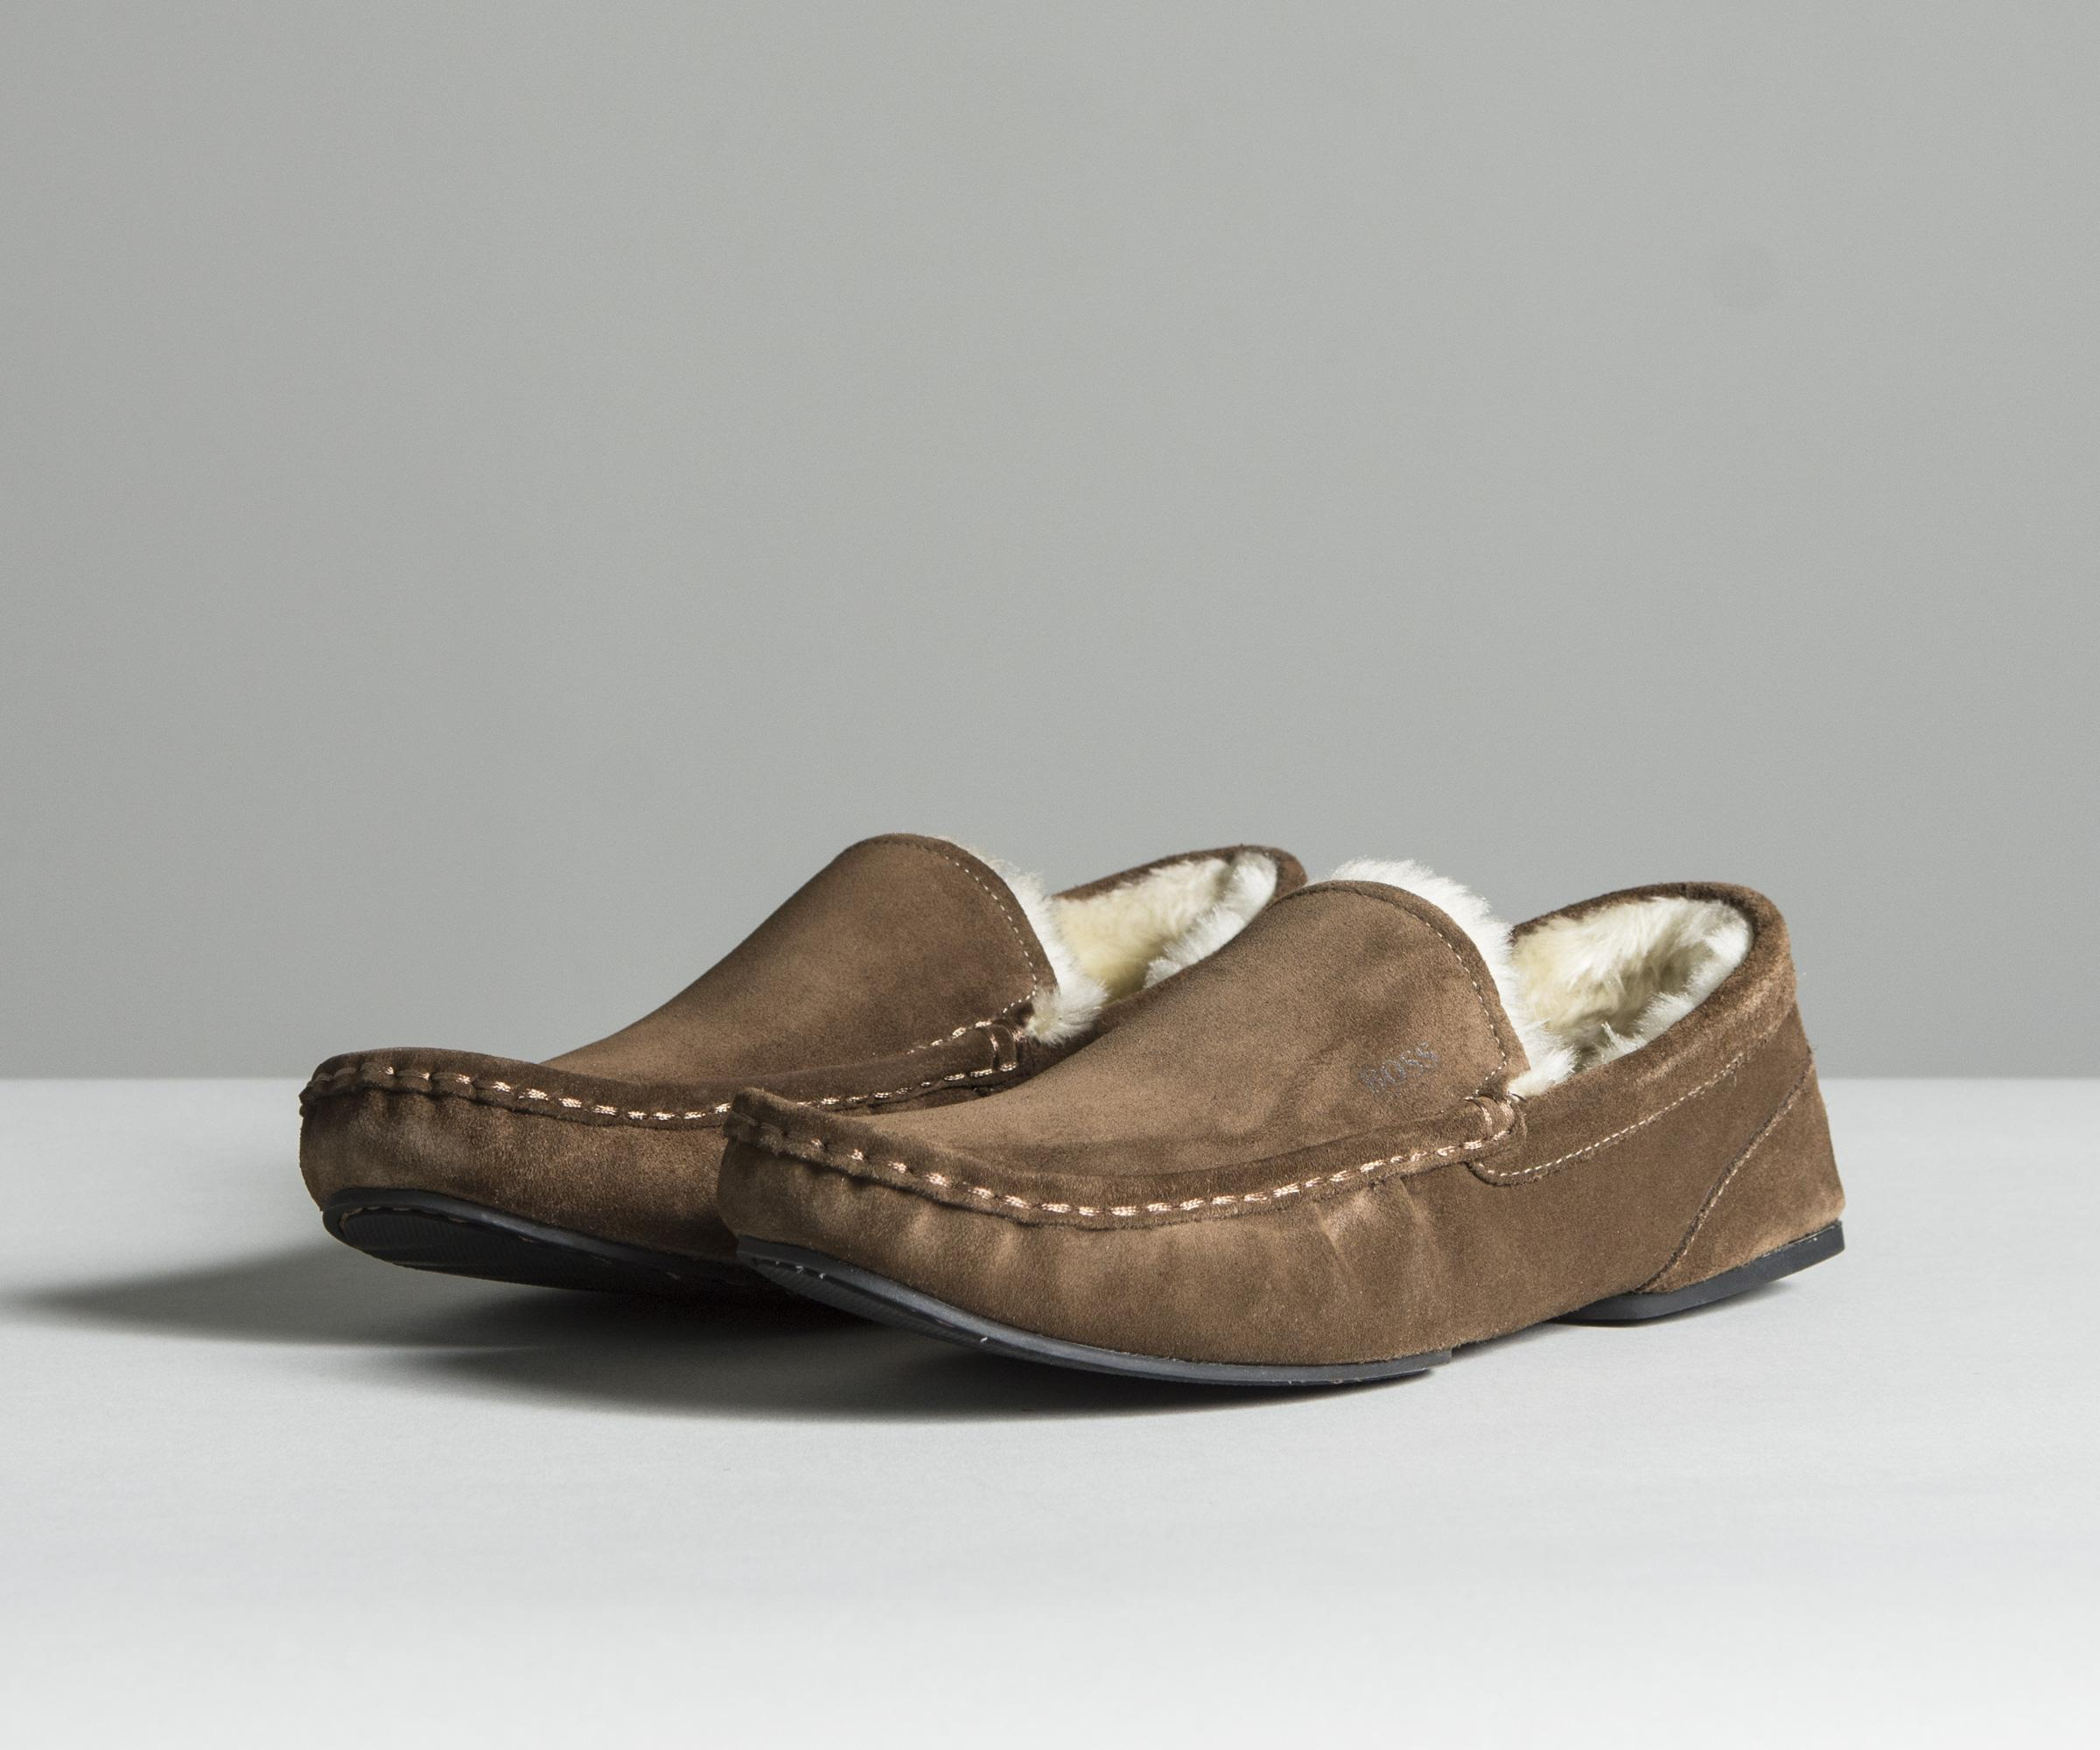 3bee19a7883 Lyst - BOSS  relax mocc sdf  Slip-on Suede Moccasins Brown in Brown ...